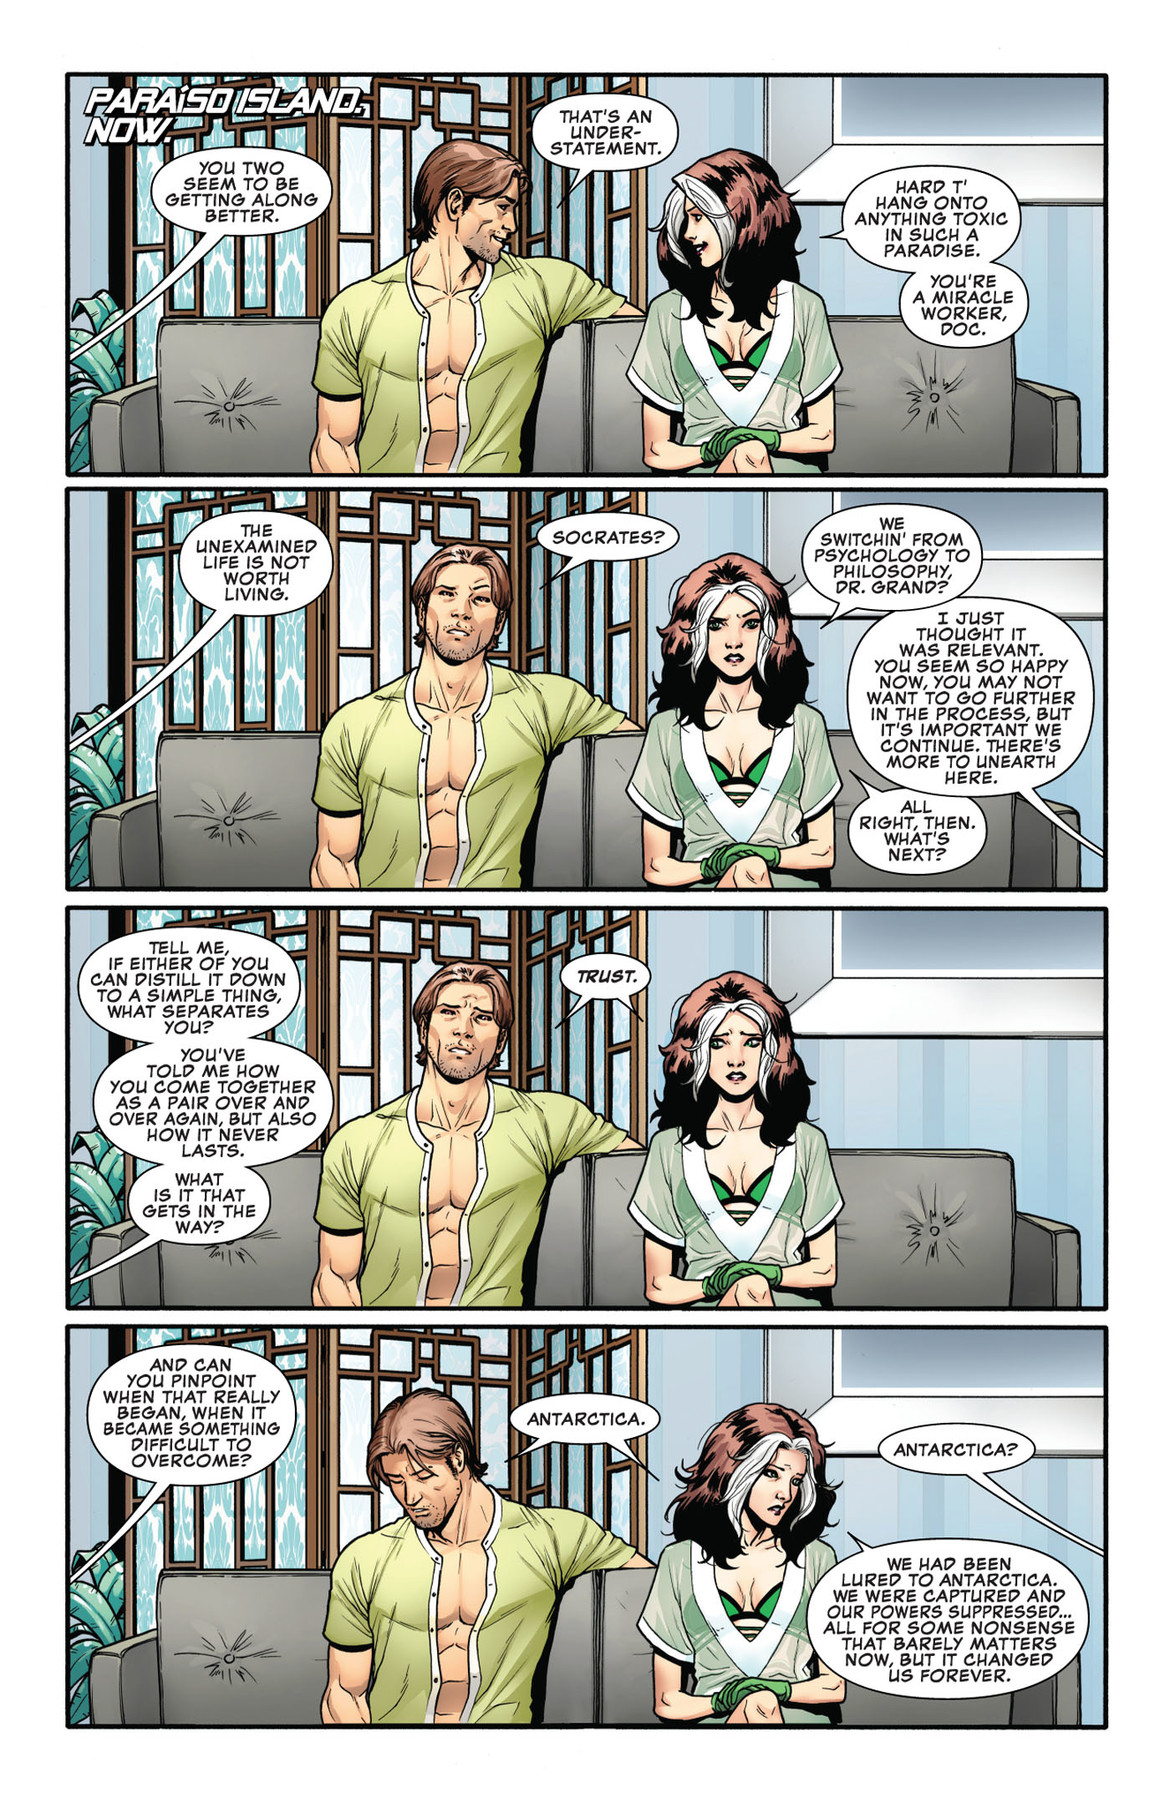 rogue_and_gambit_3_page_1.jpg